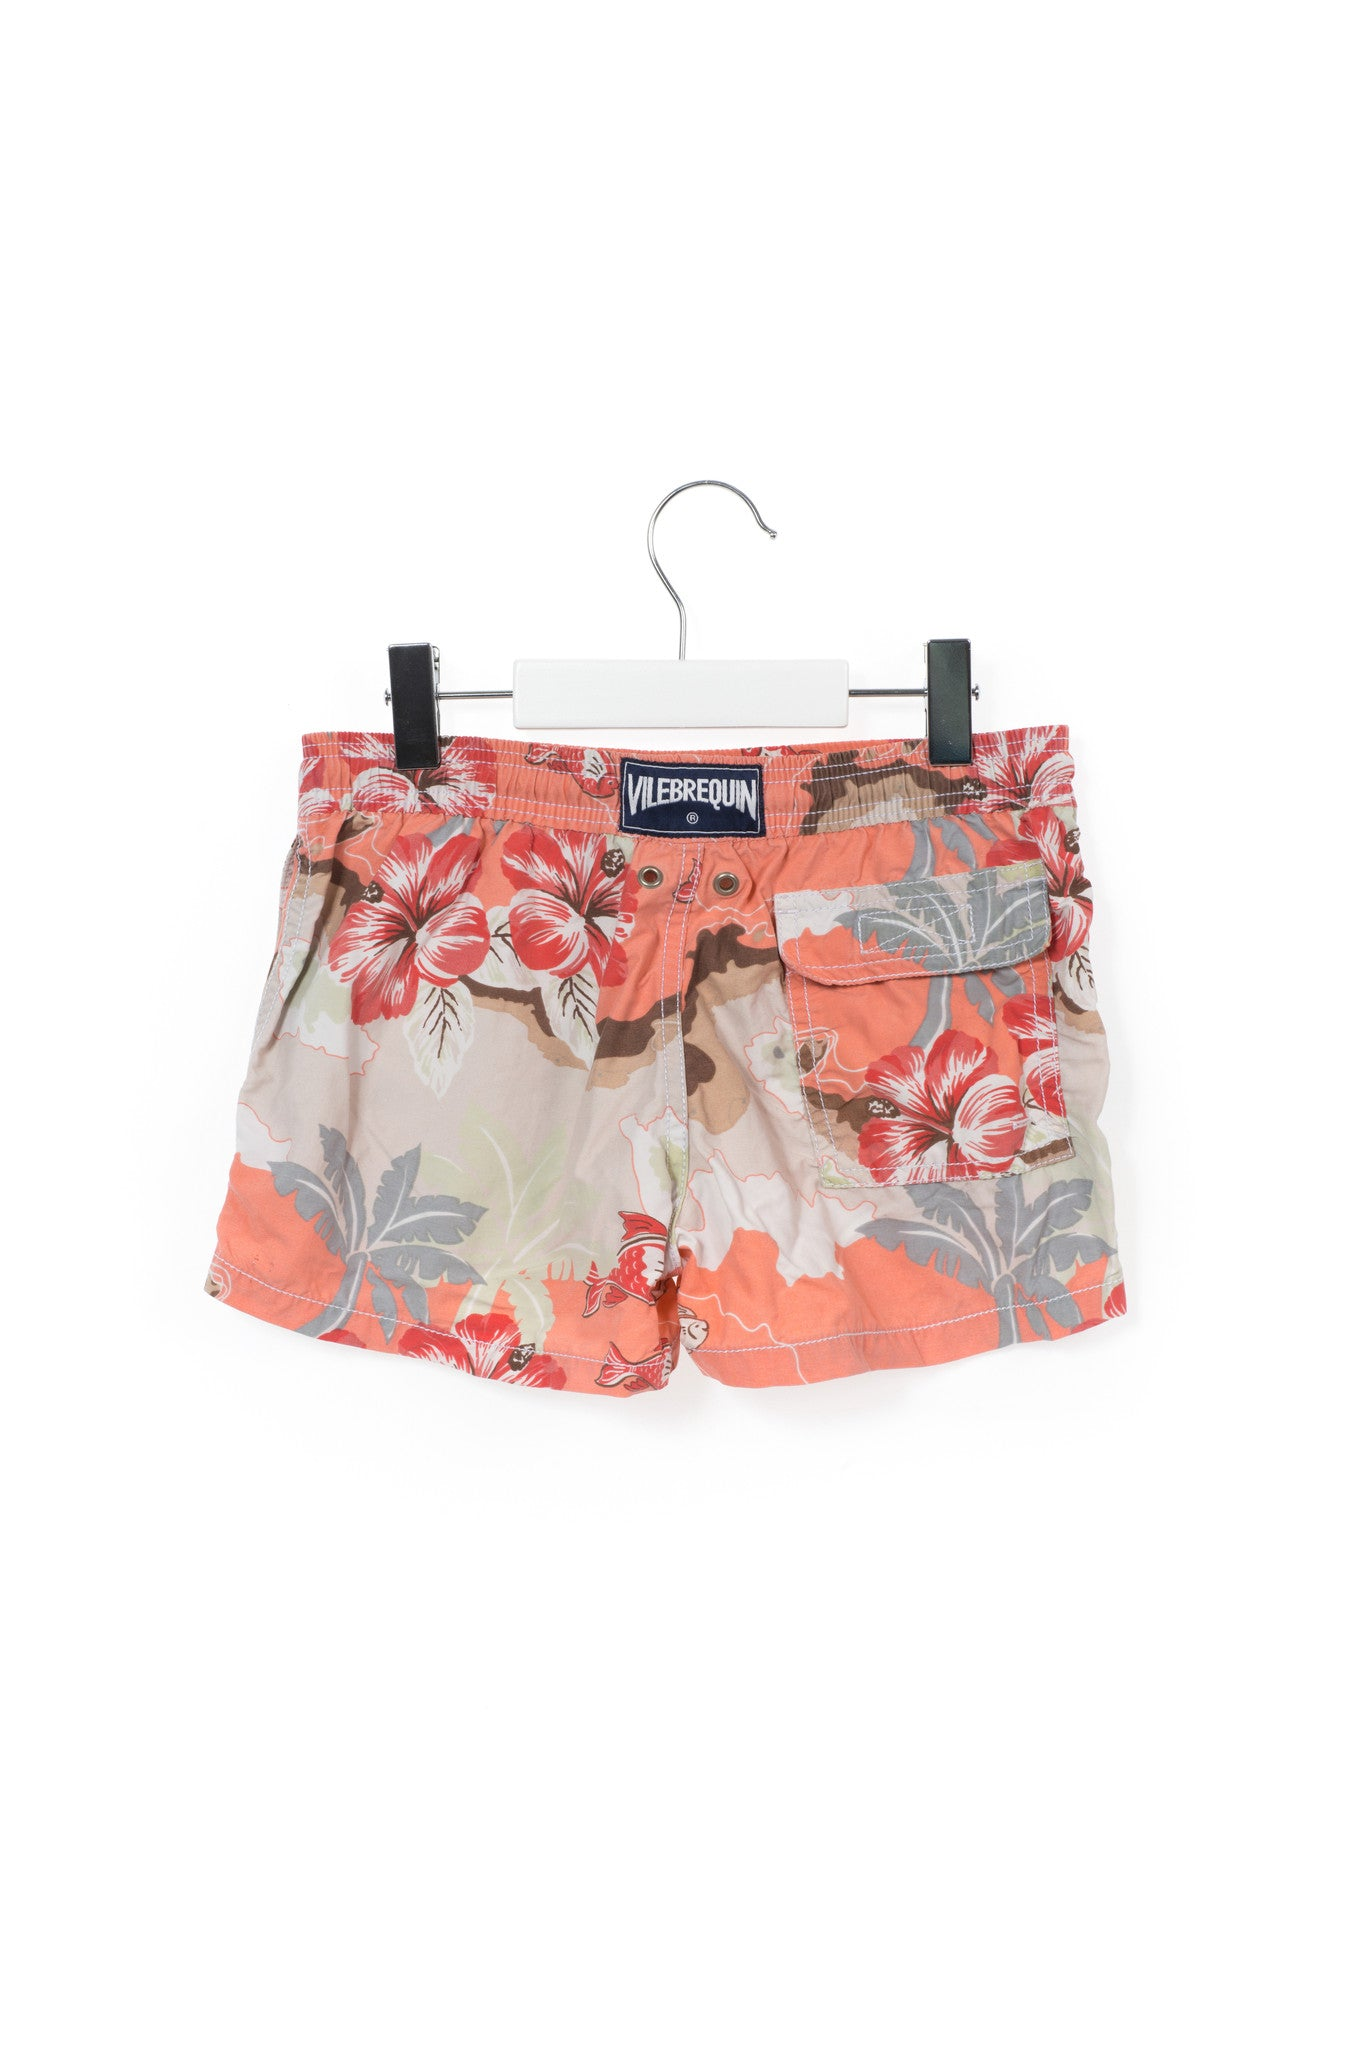 Swimwear 6T, Vilebrequin at Retykle - Online Baby & Kids Clothing Up to 90% Off